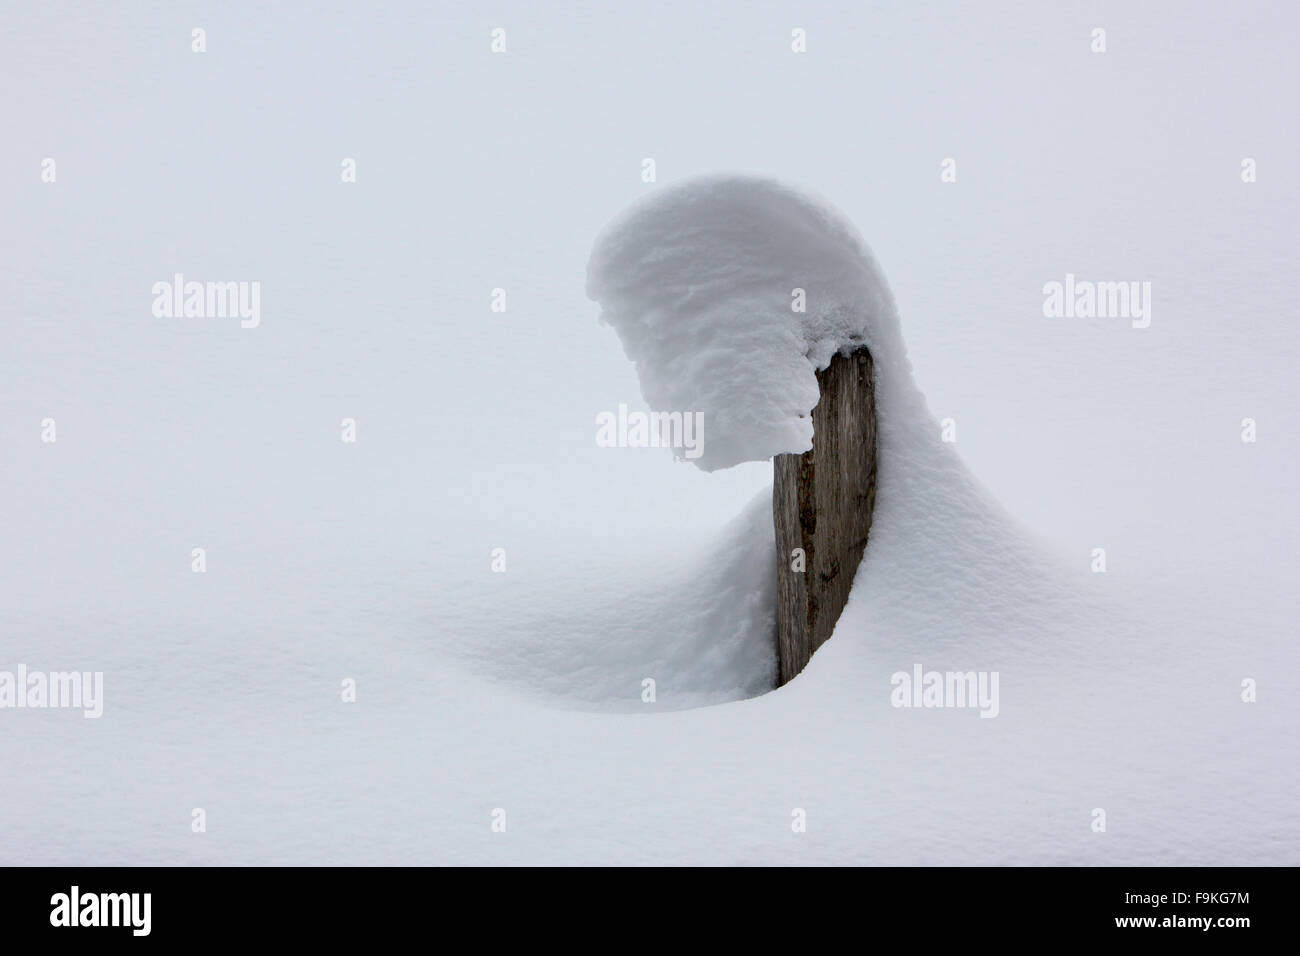 Snow shapes on a fencepost, Switzerland - Stock Image